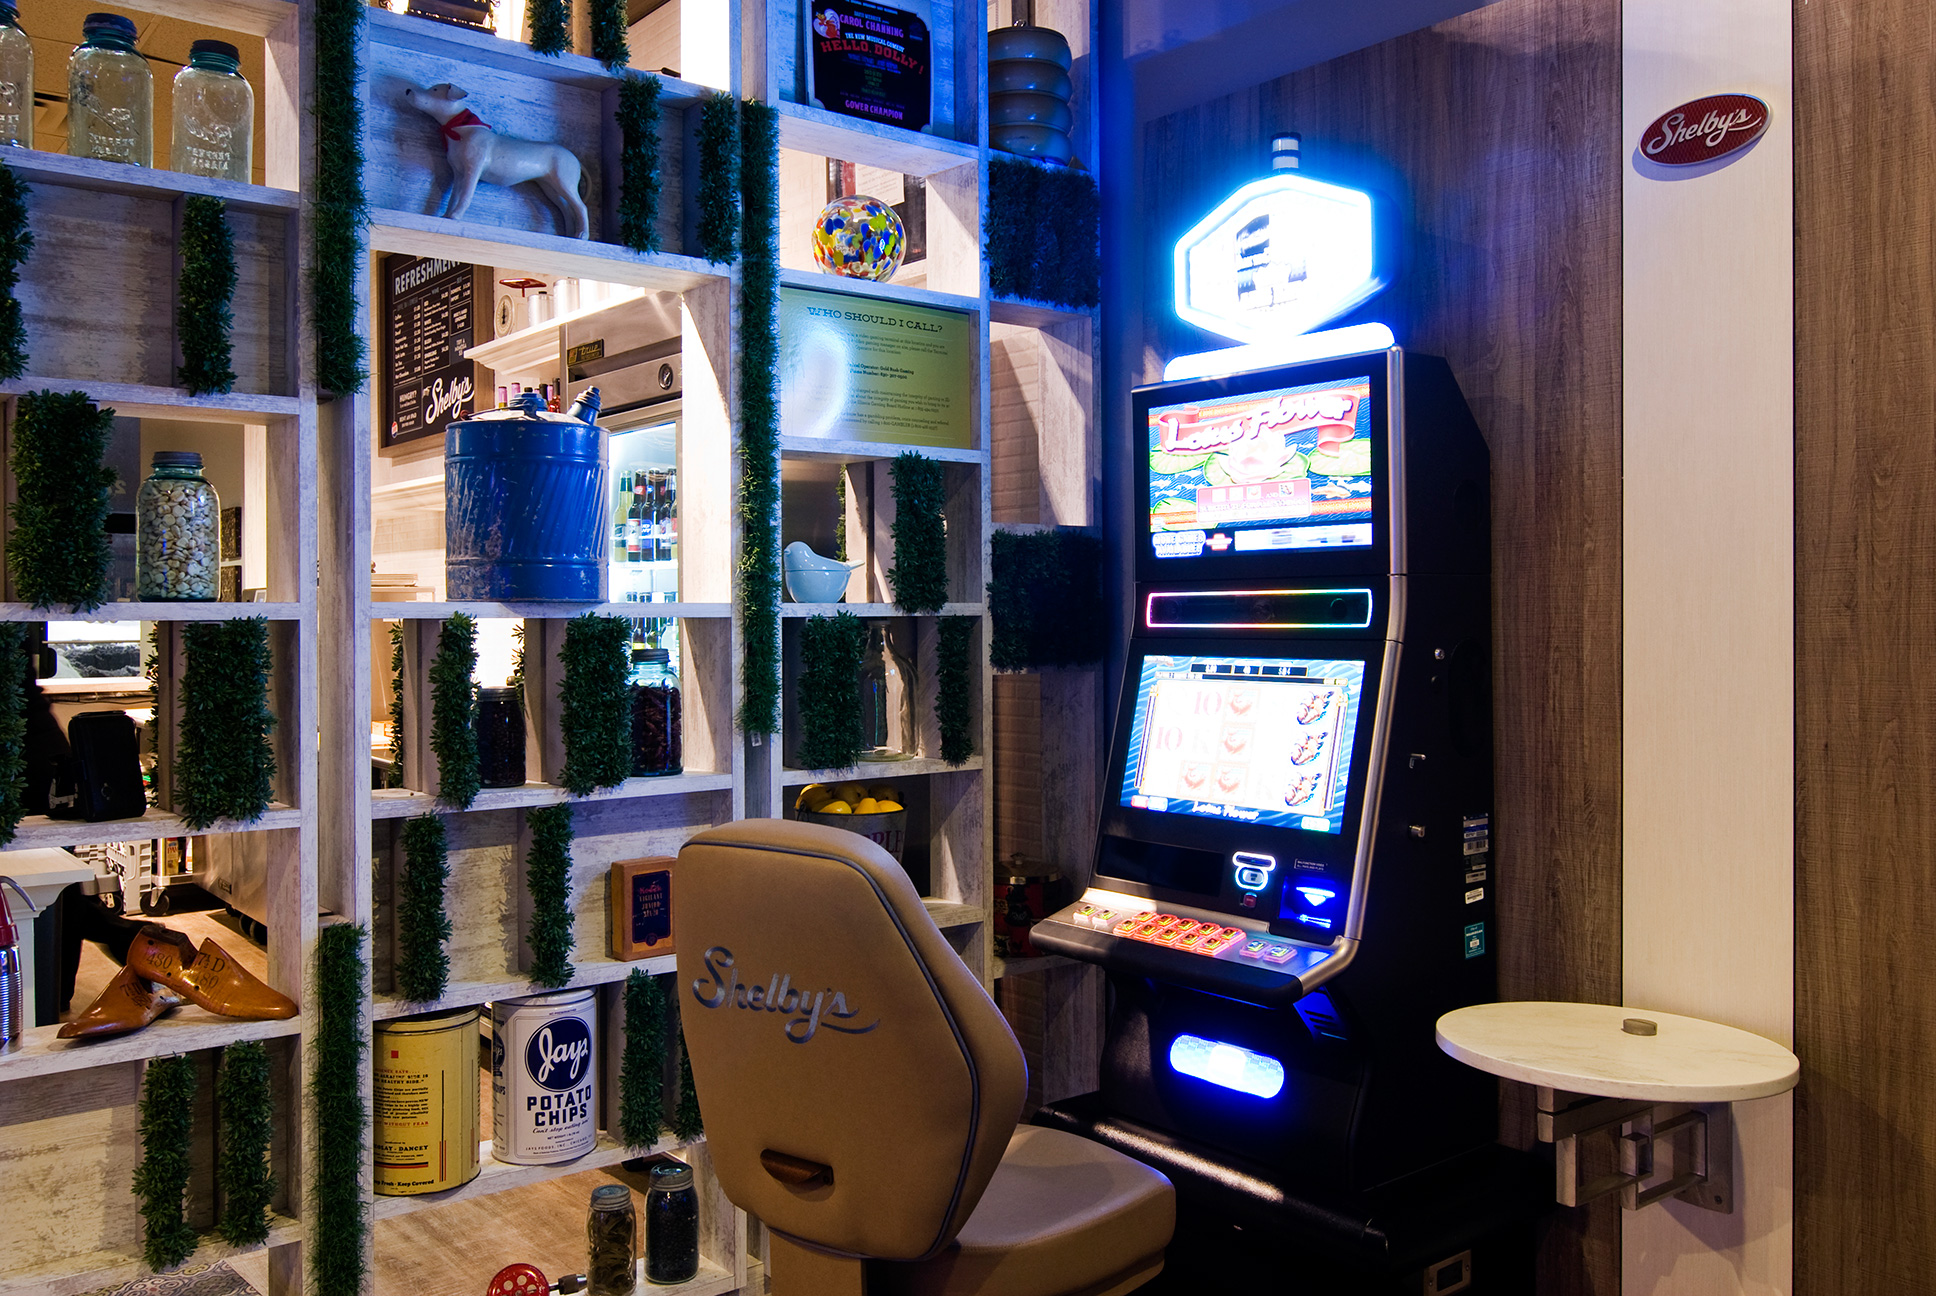 Bright lit slot machine and Shelby's branded leather chair.